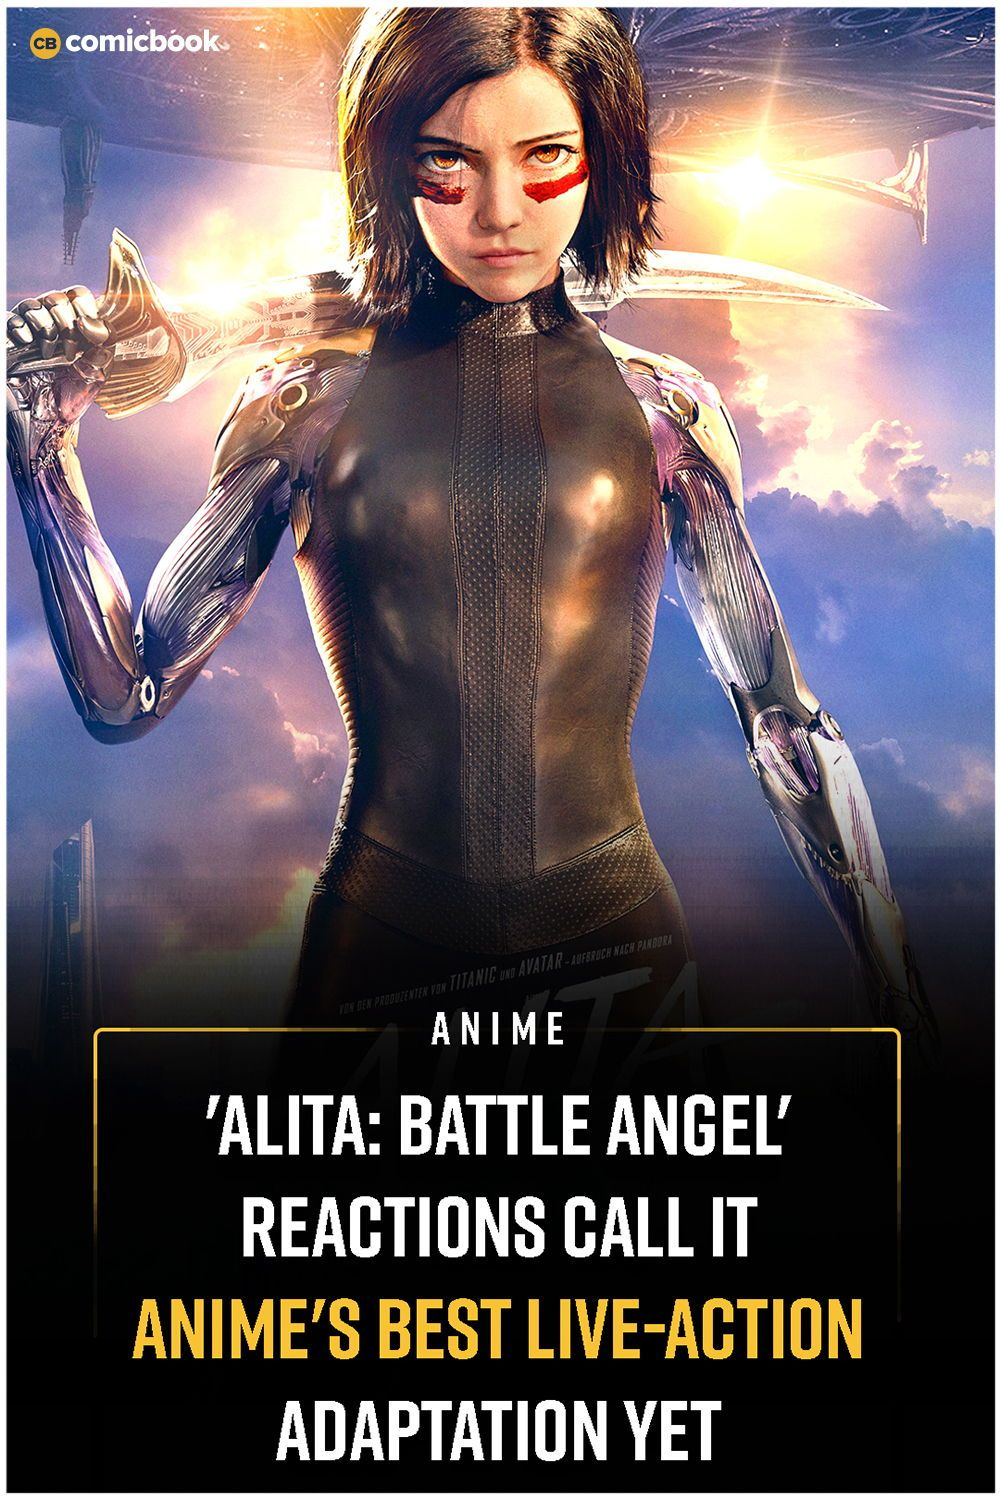 'Alita Battle Angel' Reactions Call It Anime's Best Live